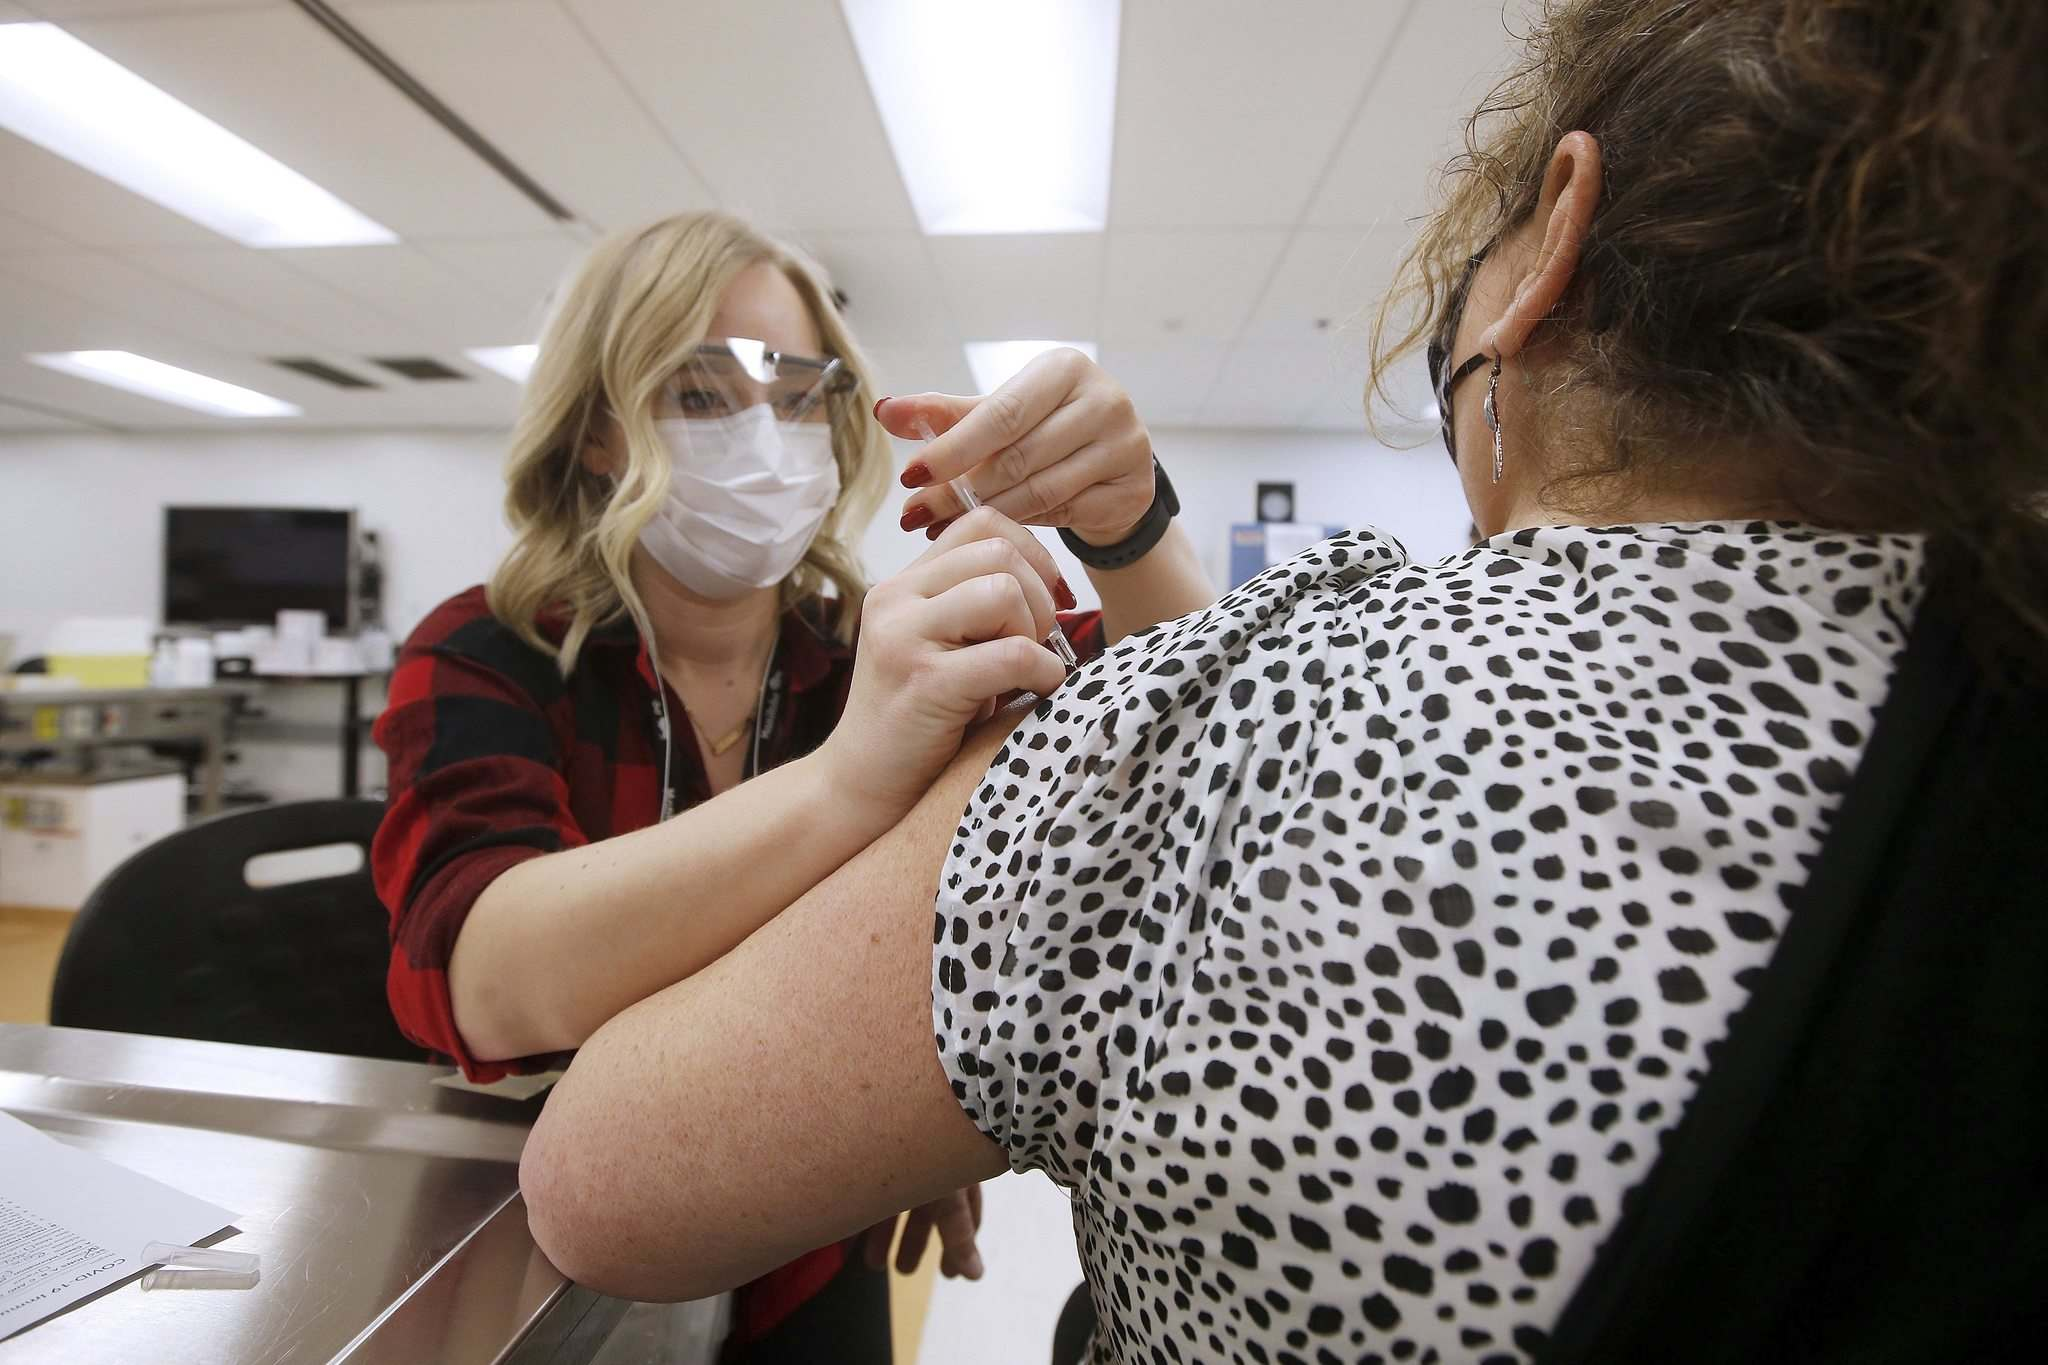 Manitoba expects to be able to provide a single shot of the vaccine to all adult Manitobans as early as May 18.